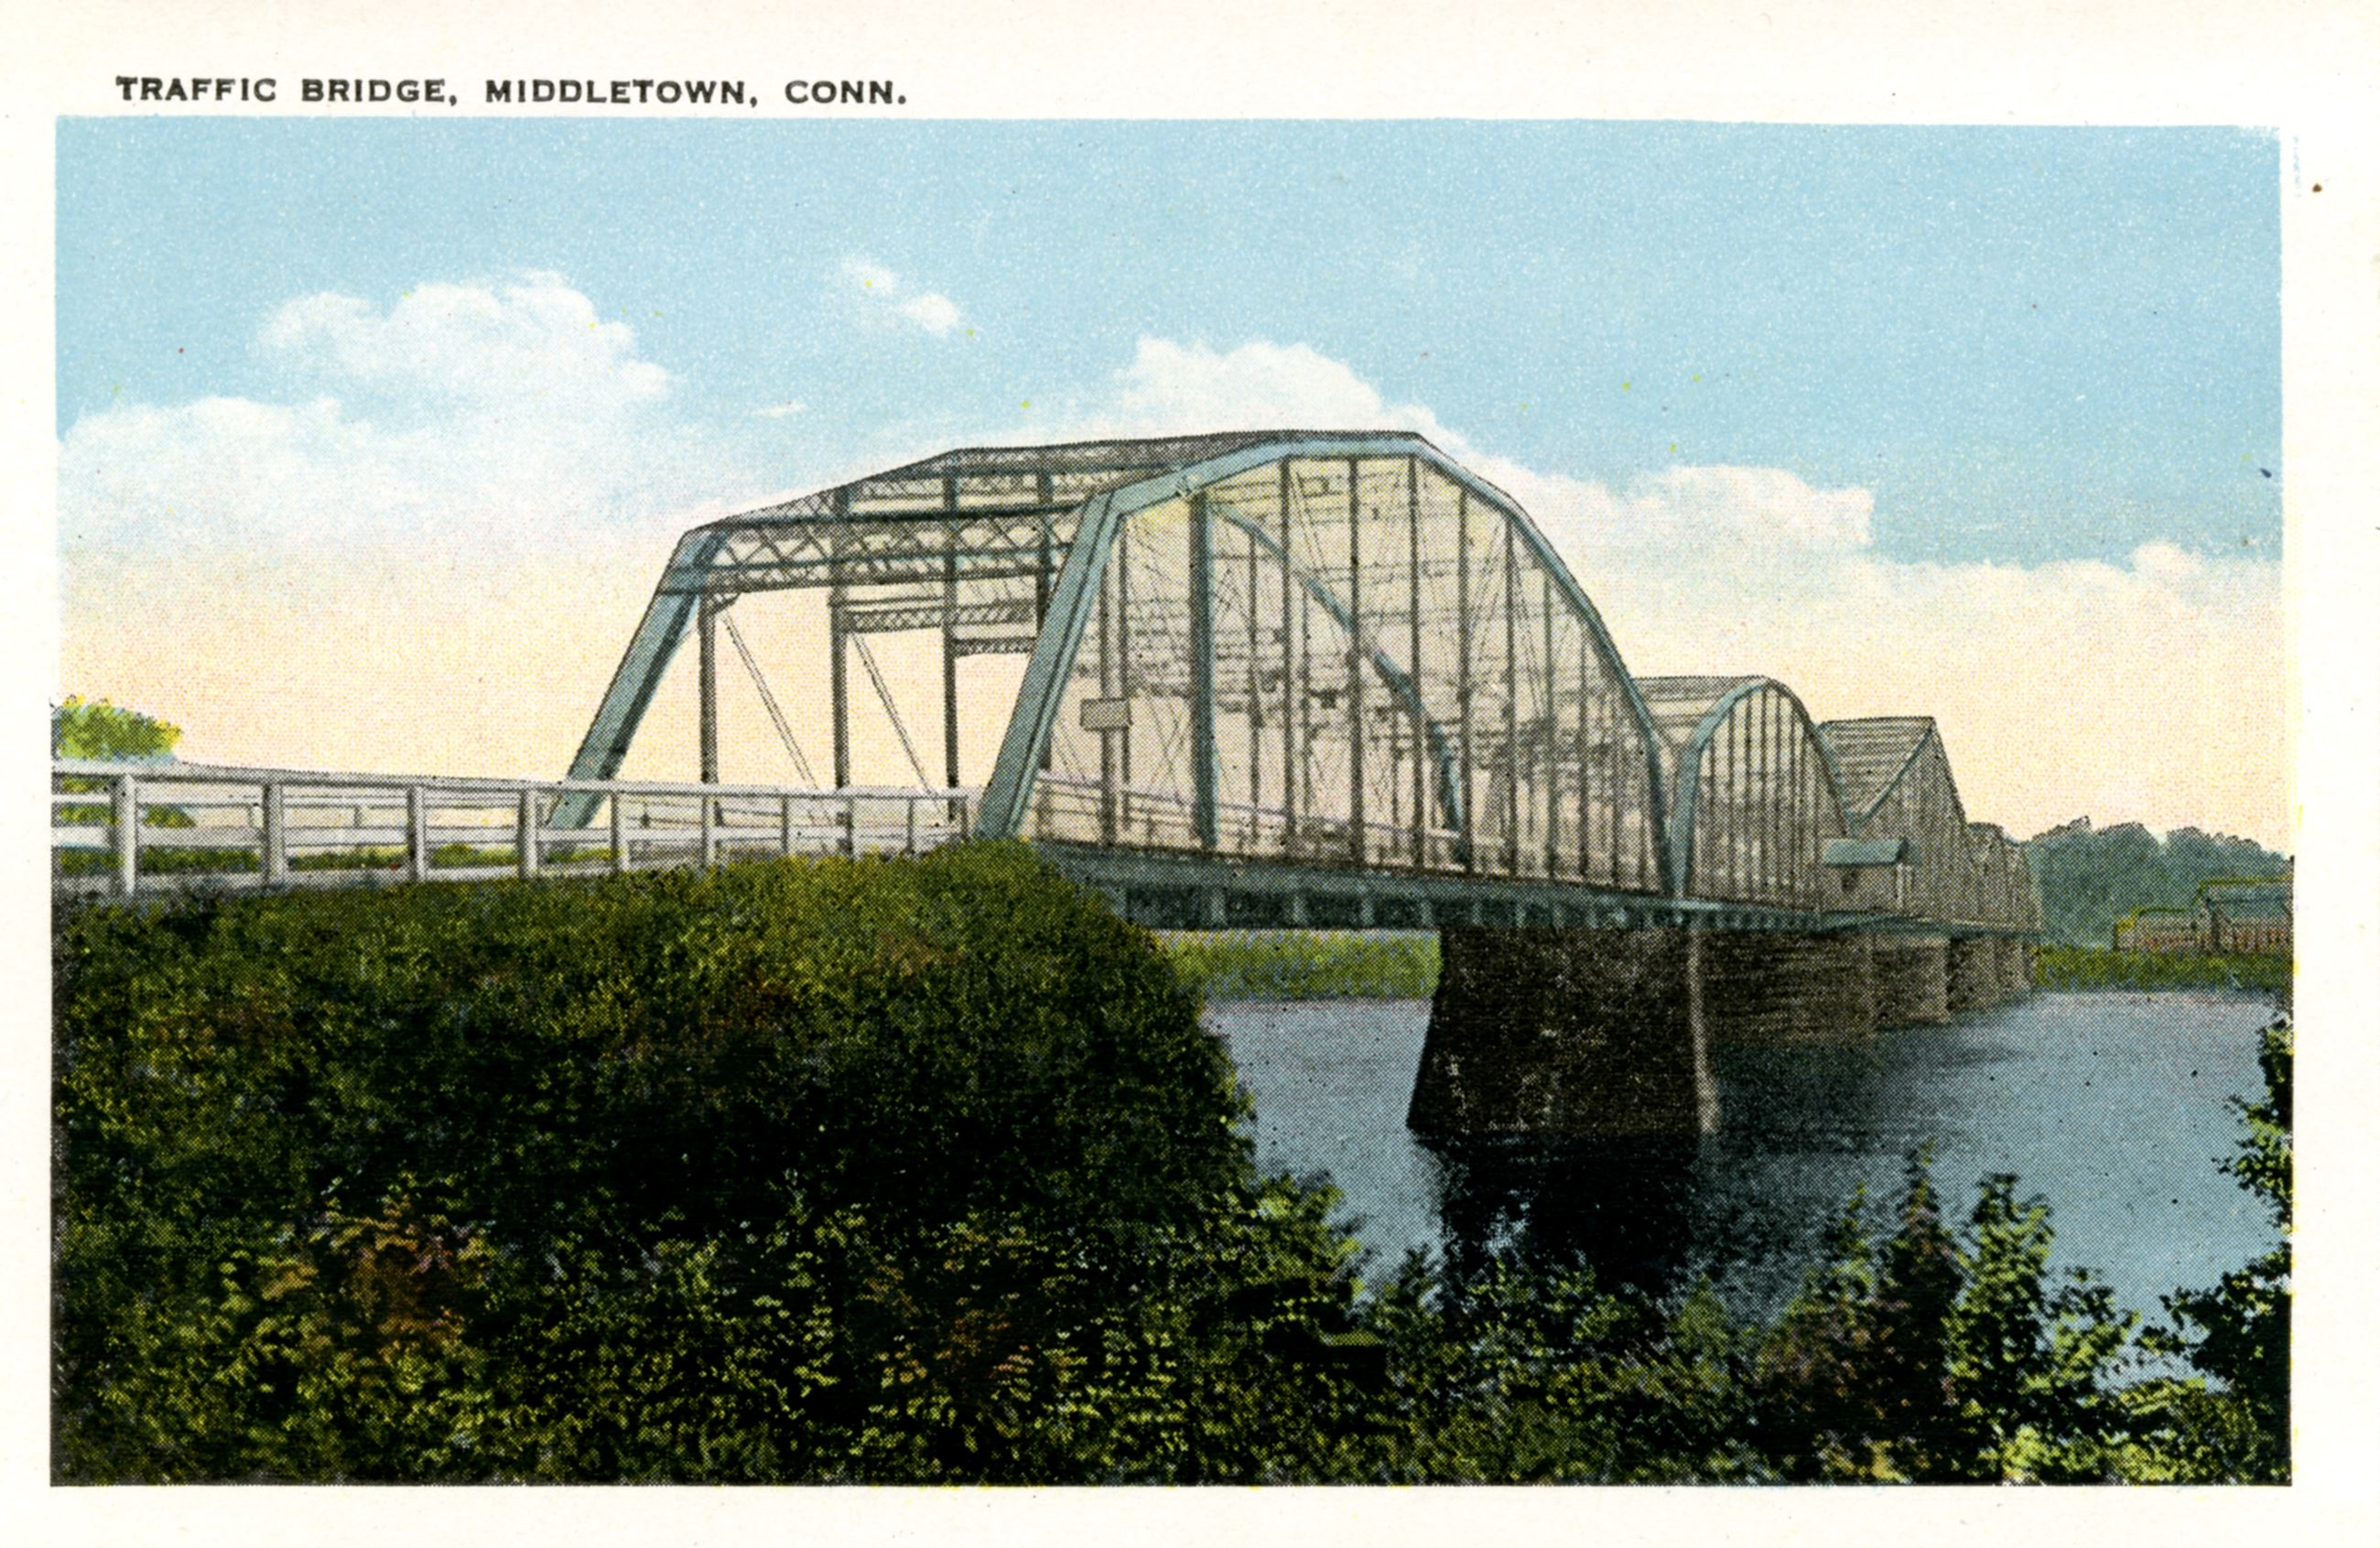 Historical Image of Traffic Bridge